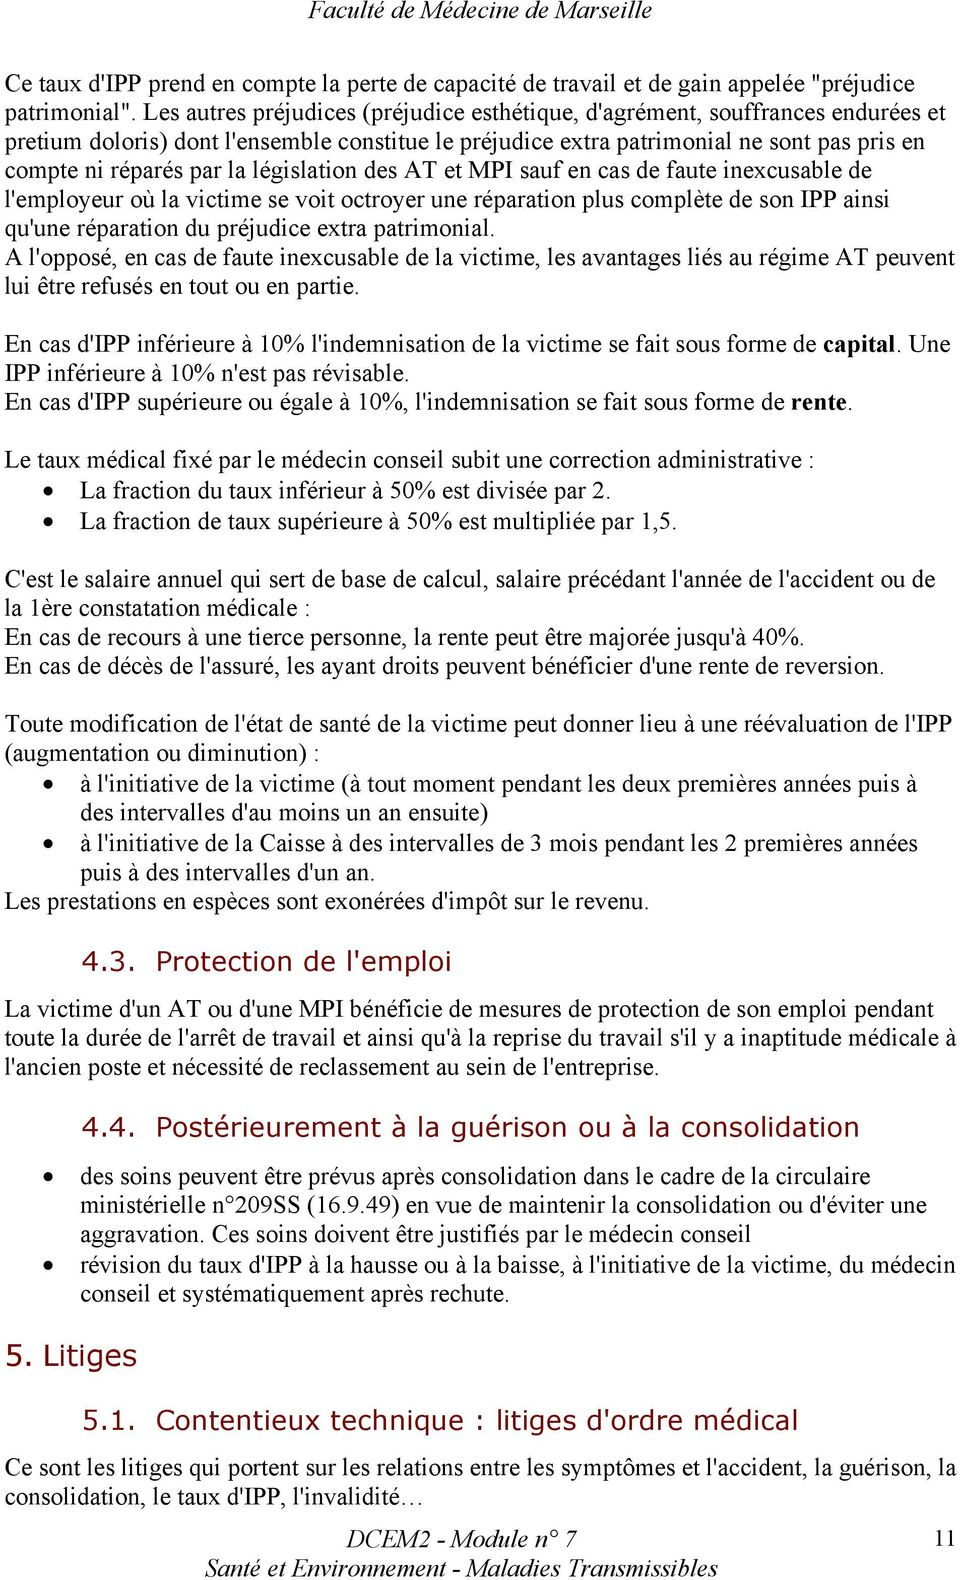 Accidents Du Travail Et Maladies Professionnelles Definitions 109